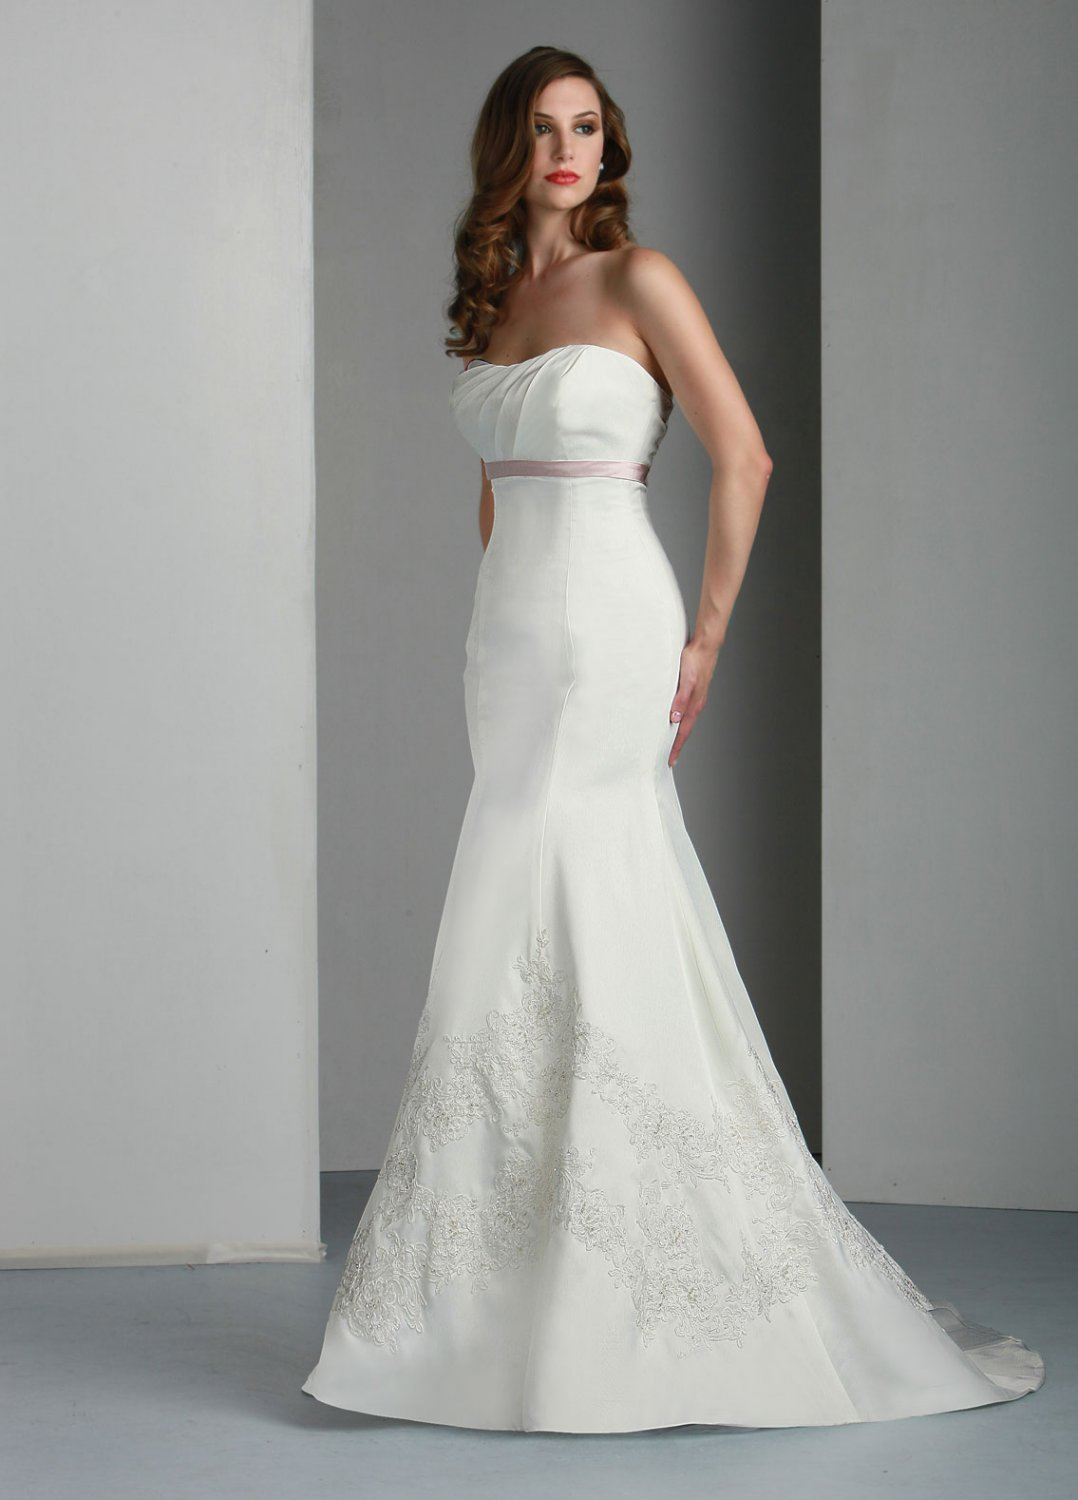 Free shipping the latest mermaid wedding dresses EC349